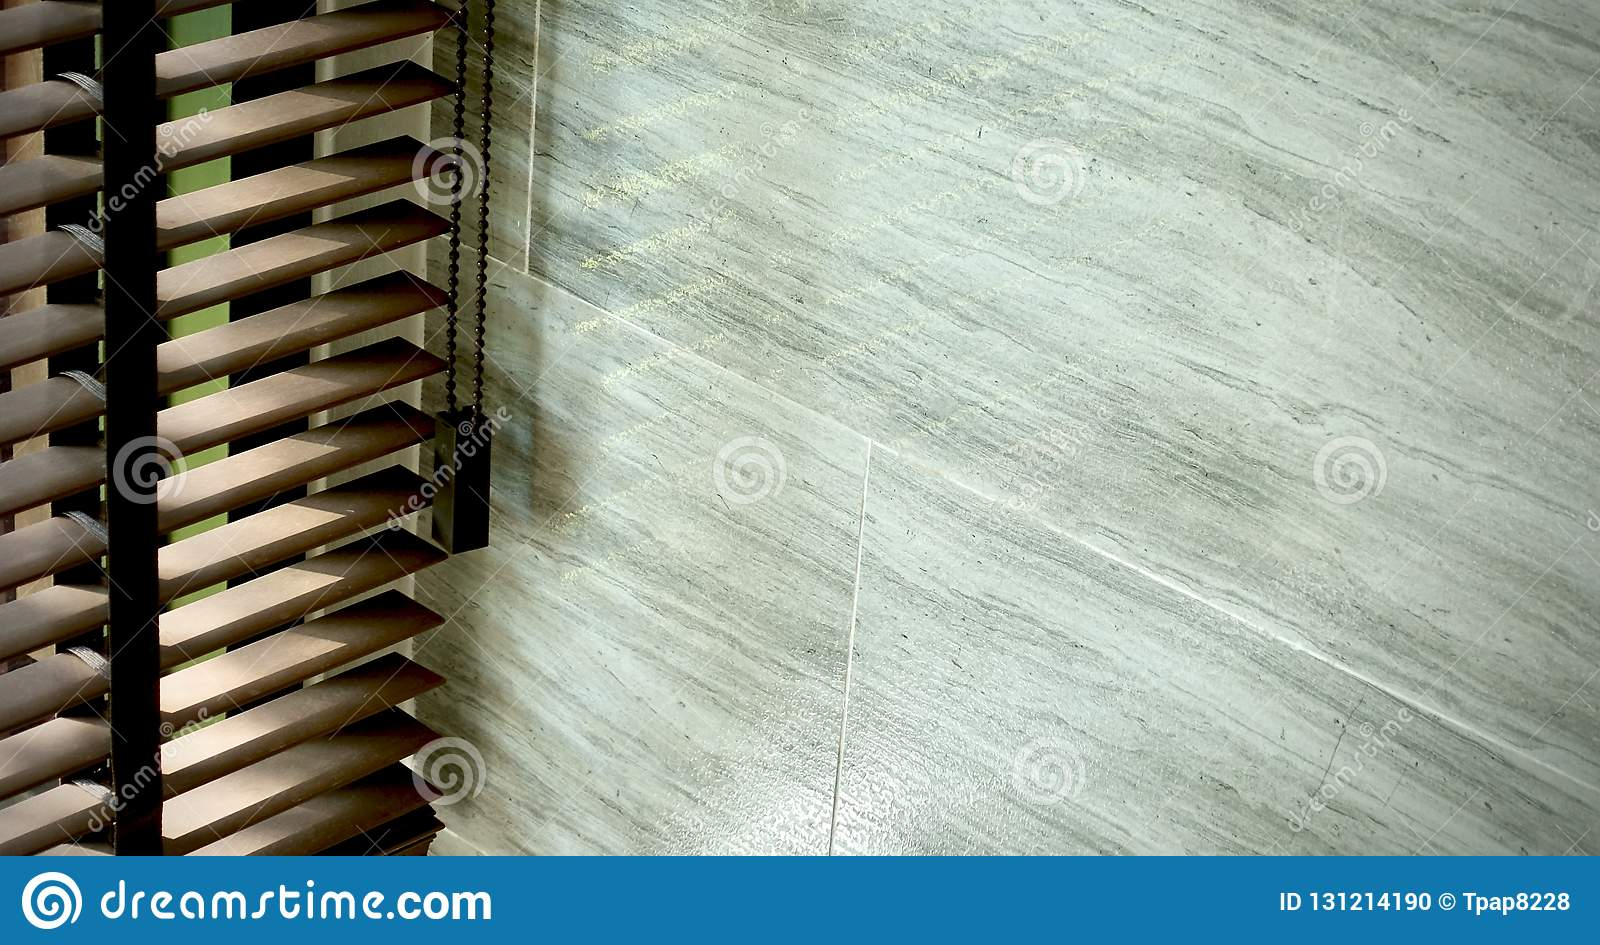 Blinds Evening Sun Light Outside Window Blinds Sunshine And Shadow On Window Blind Decorative Interior In Home Stock Photo Image Of Abstract Living 131214190